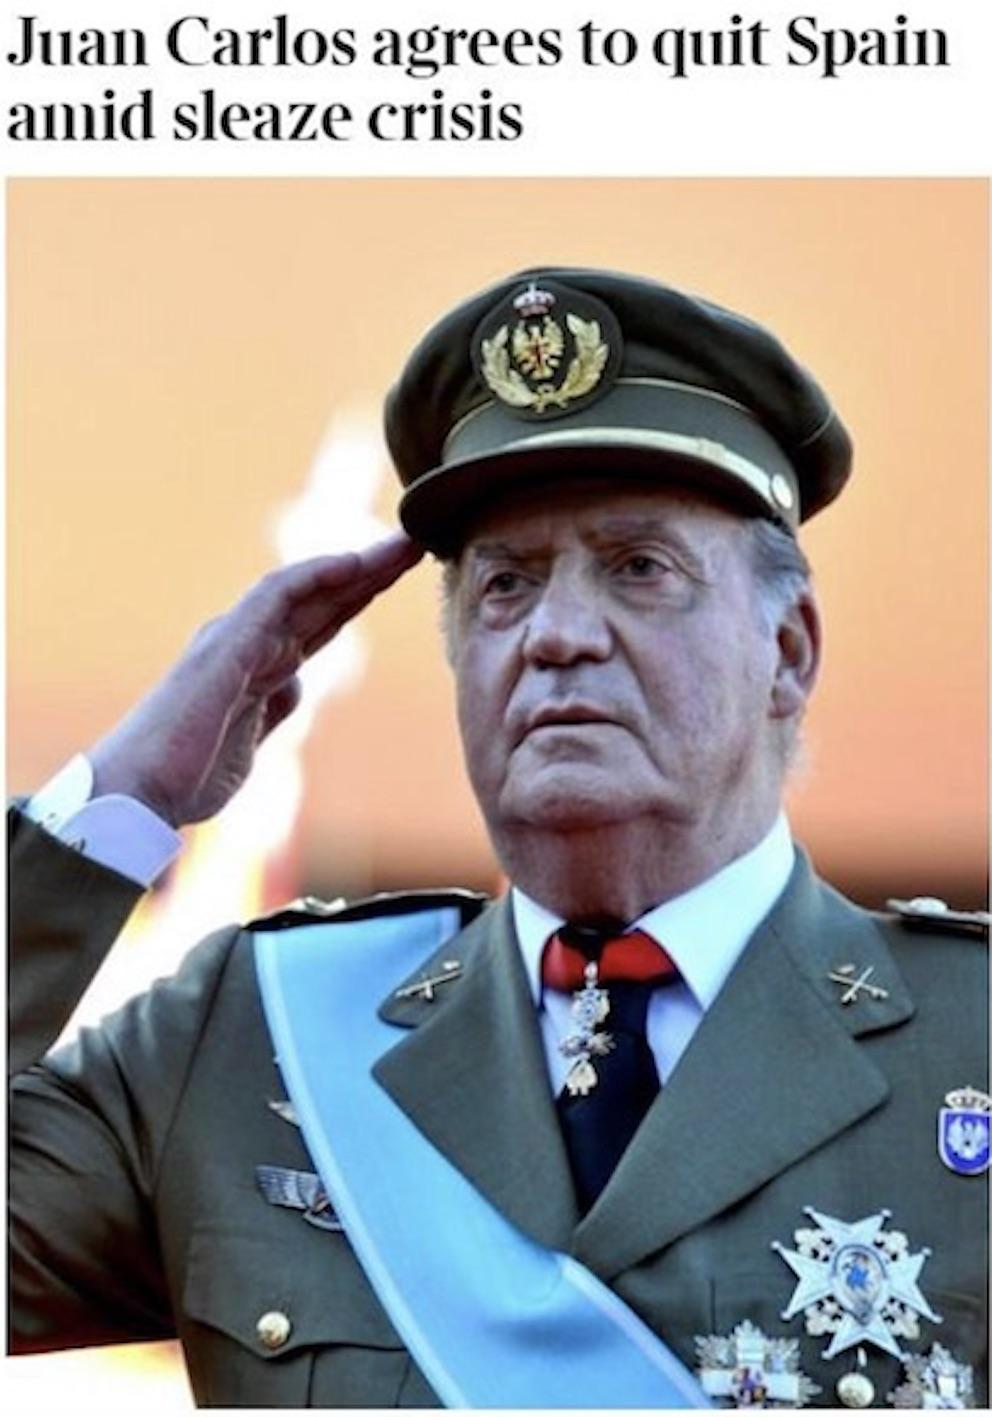 Times: Juan Carlos agrees to quit Spain amid sleaze crisis.